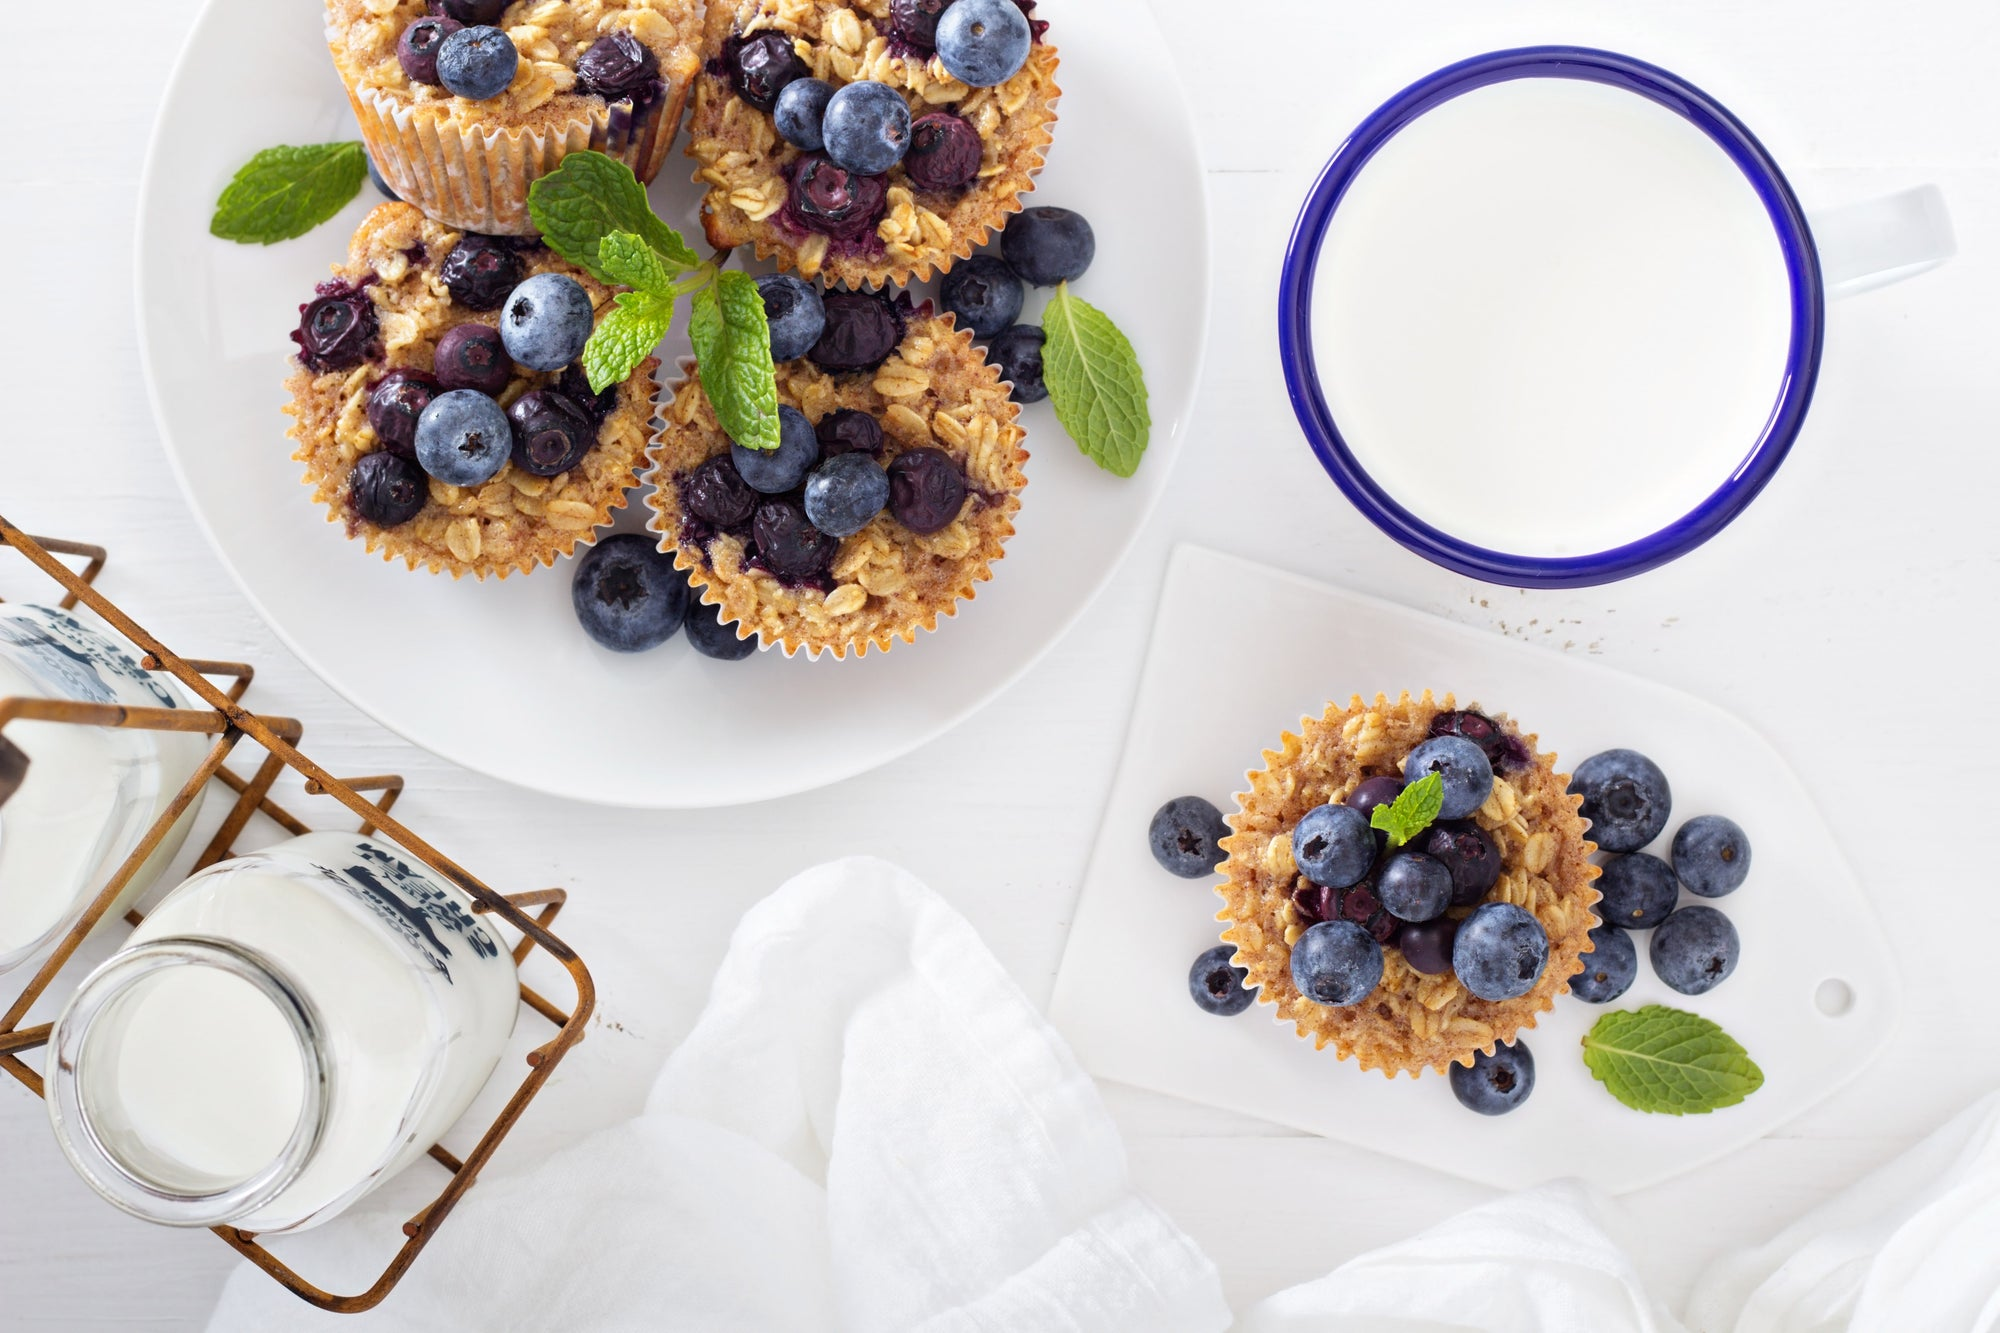 Peanut Butter Blueberry Oatmeal Muffins Recipe